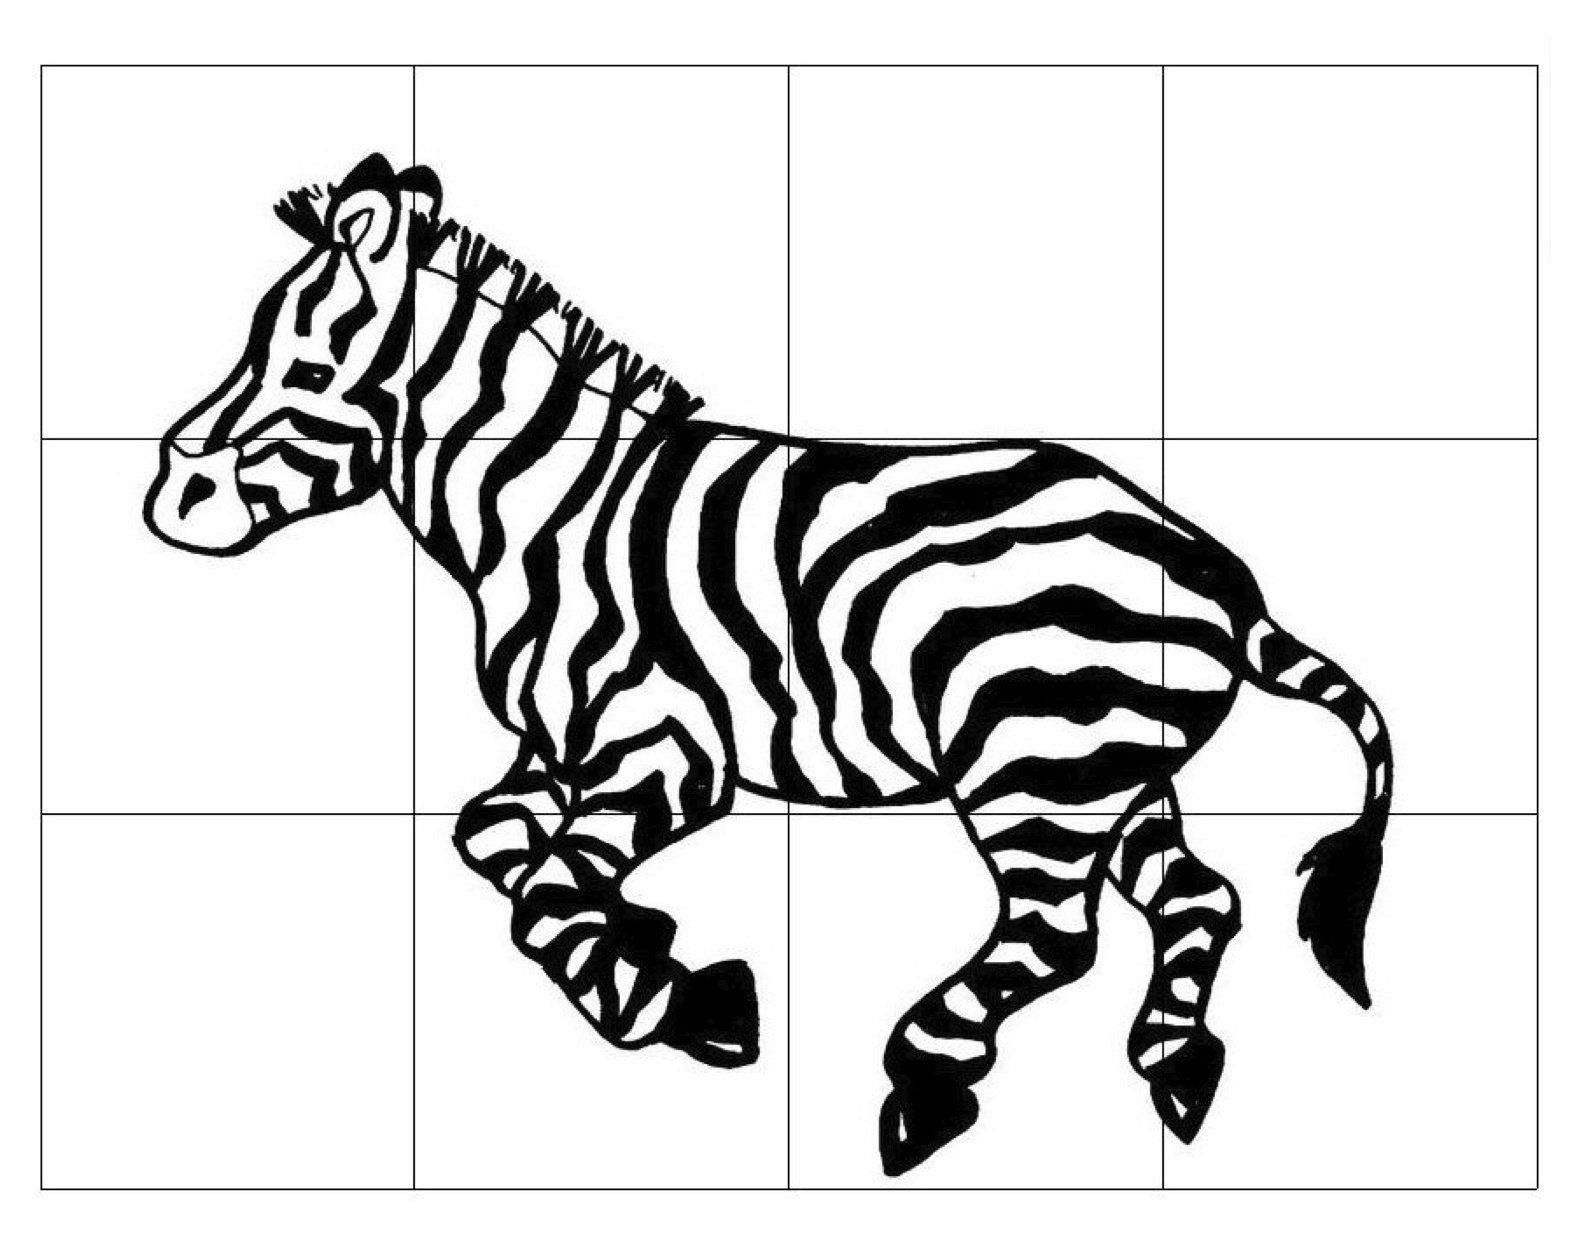 Zebra-Puzzle-For-Kids | Zebra - Printable Zebra Puzzle